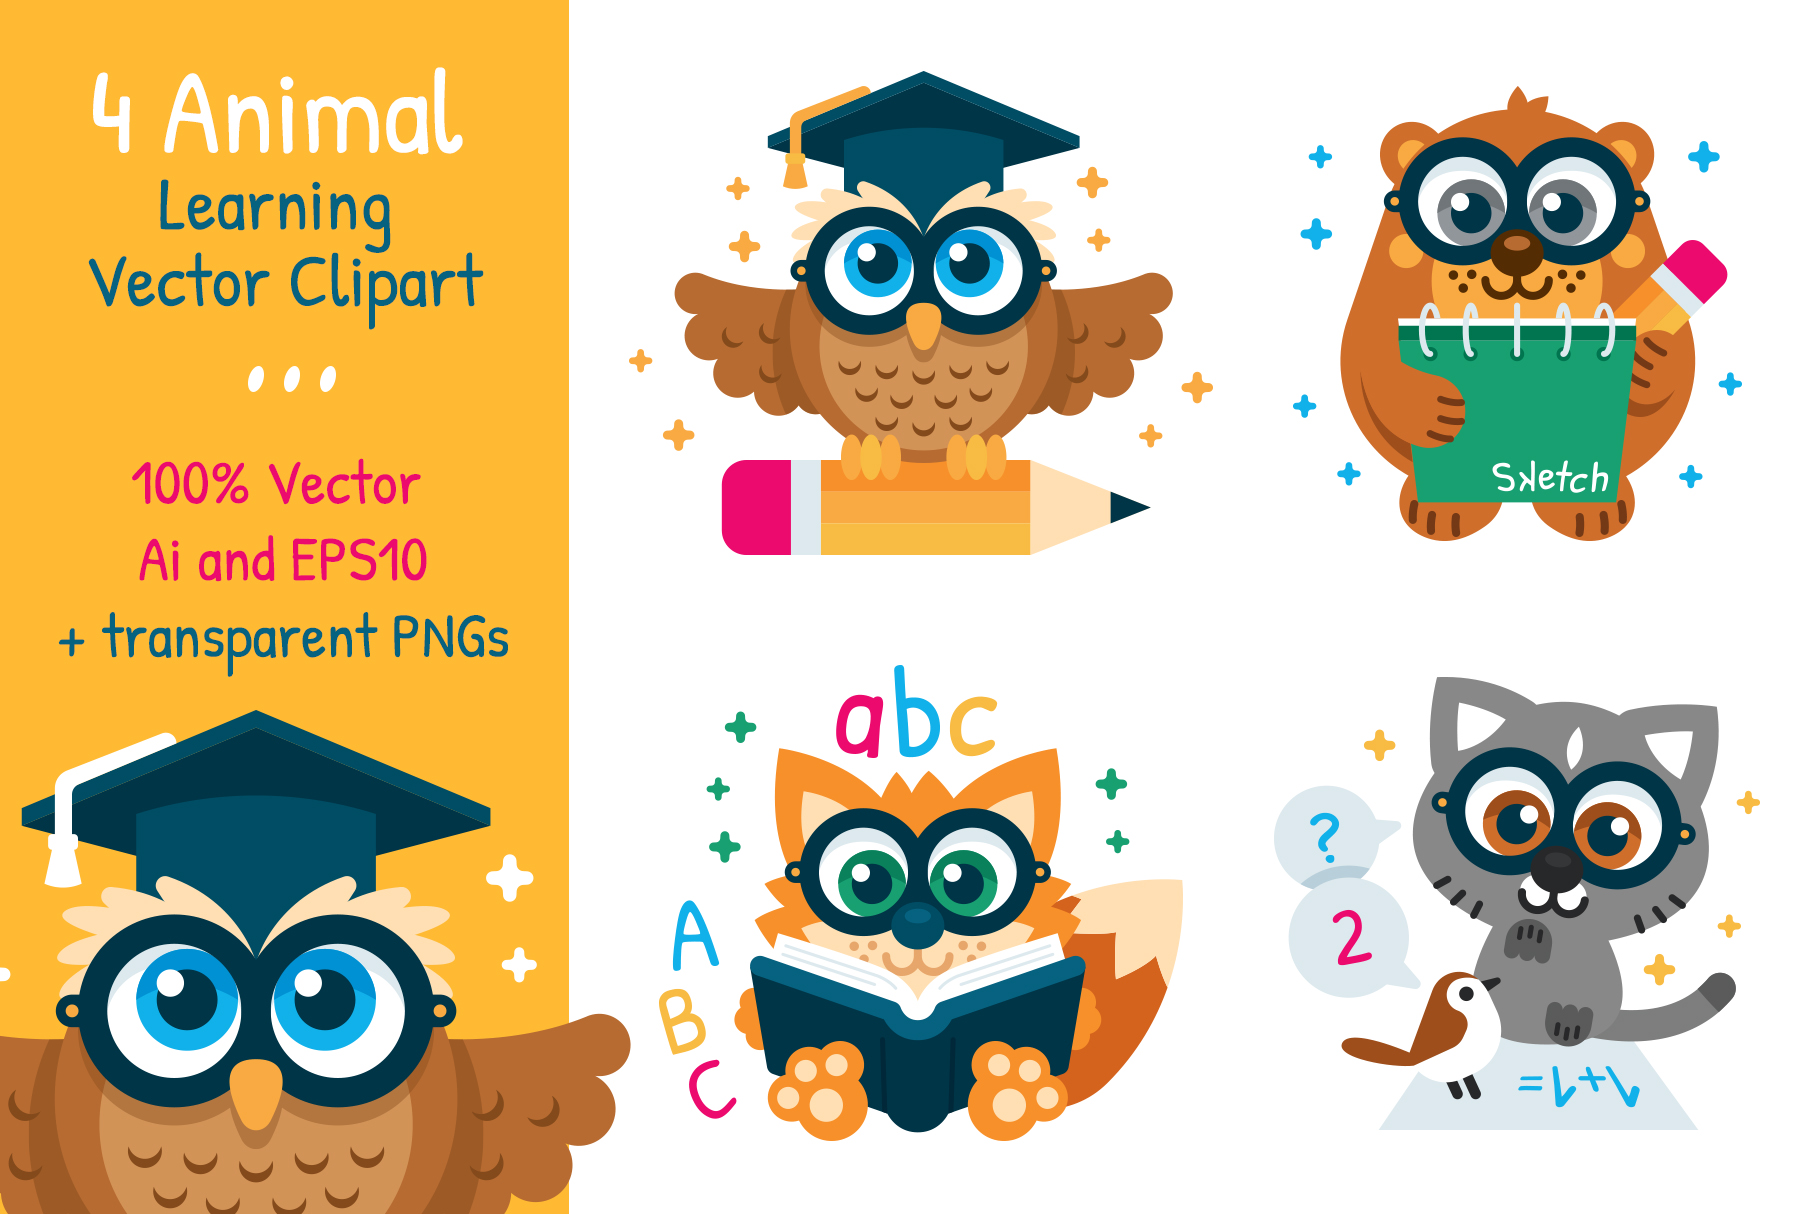 4 Animal Learning Vector Clipart example image 1